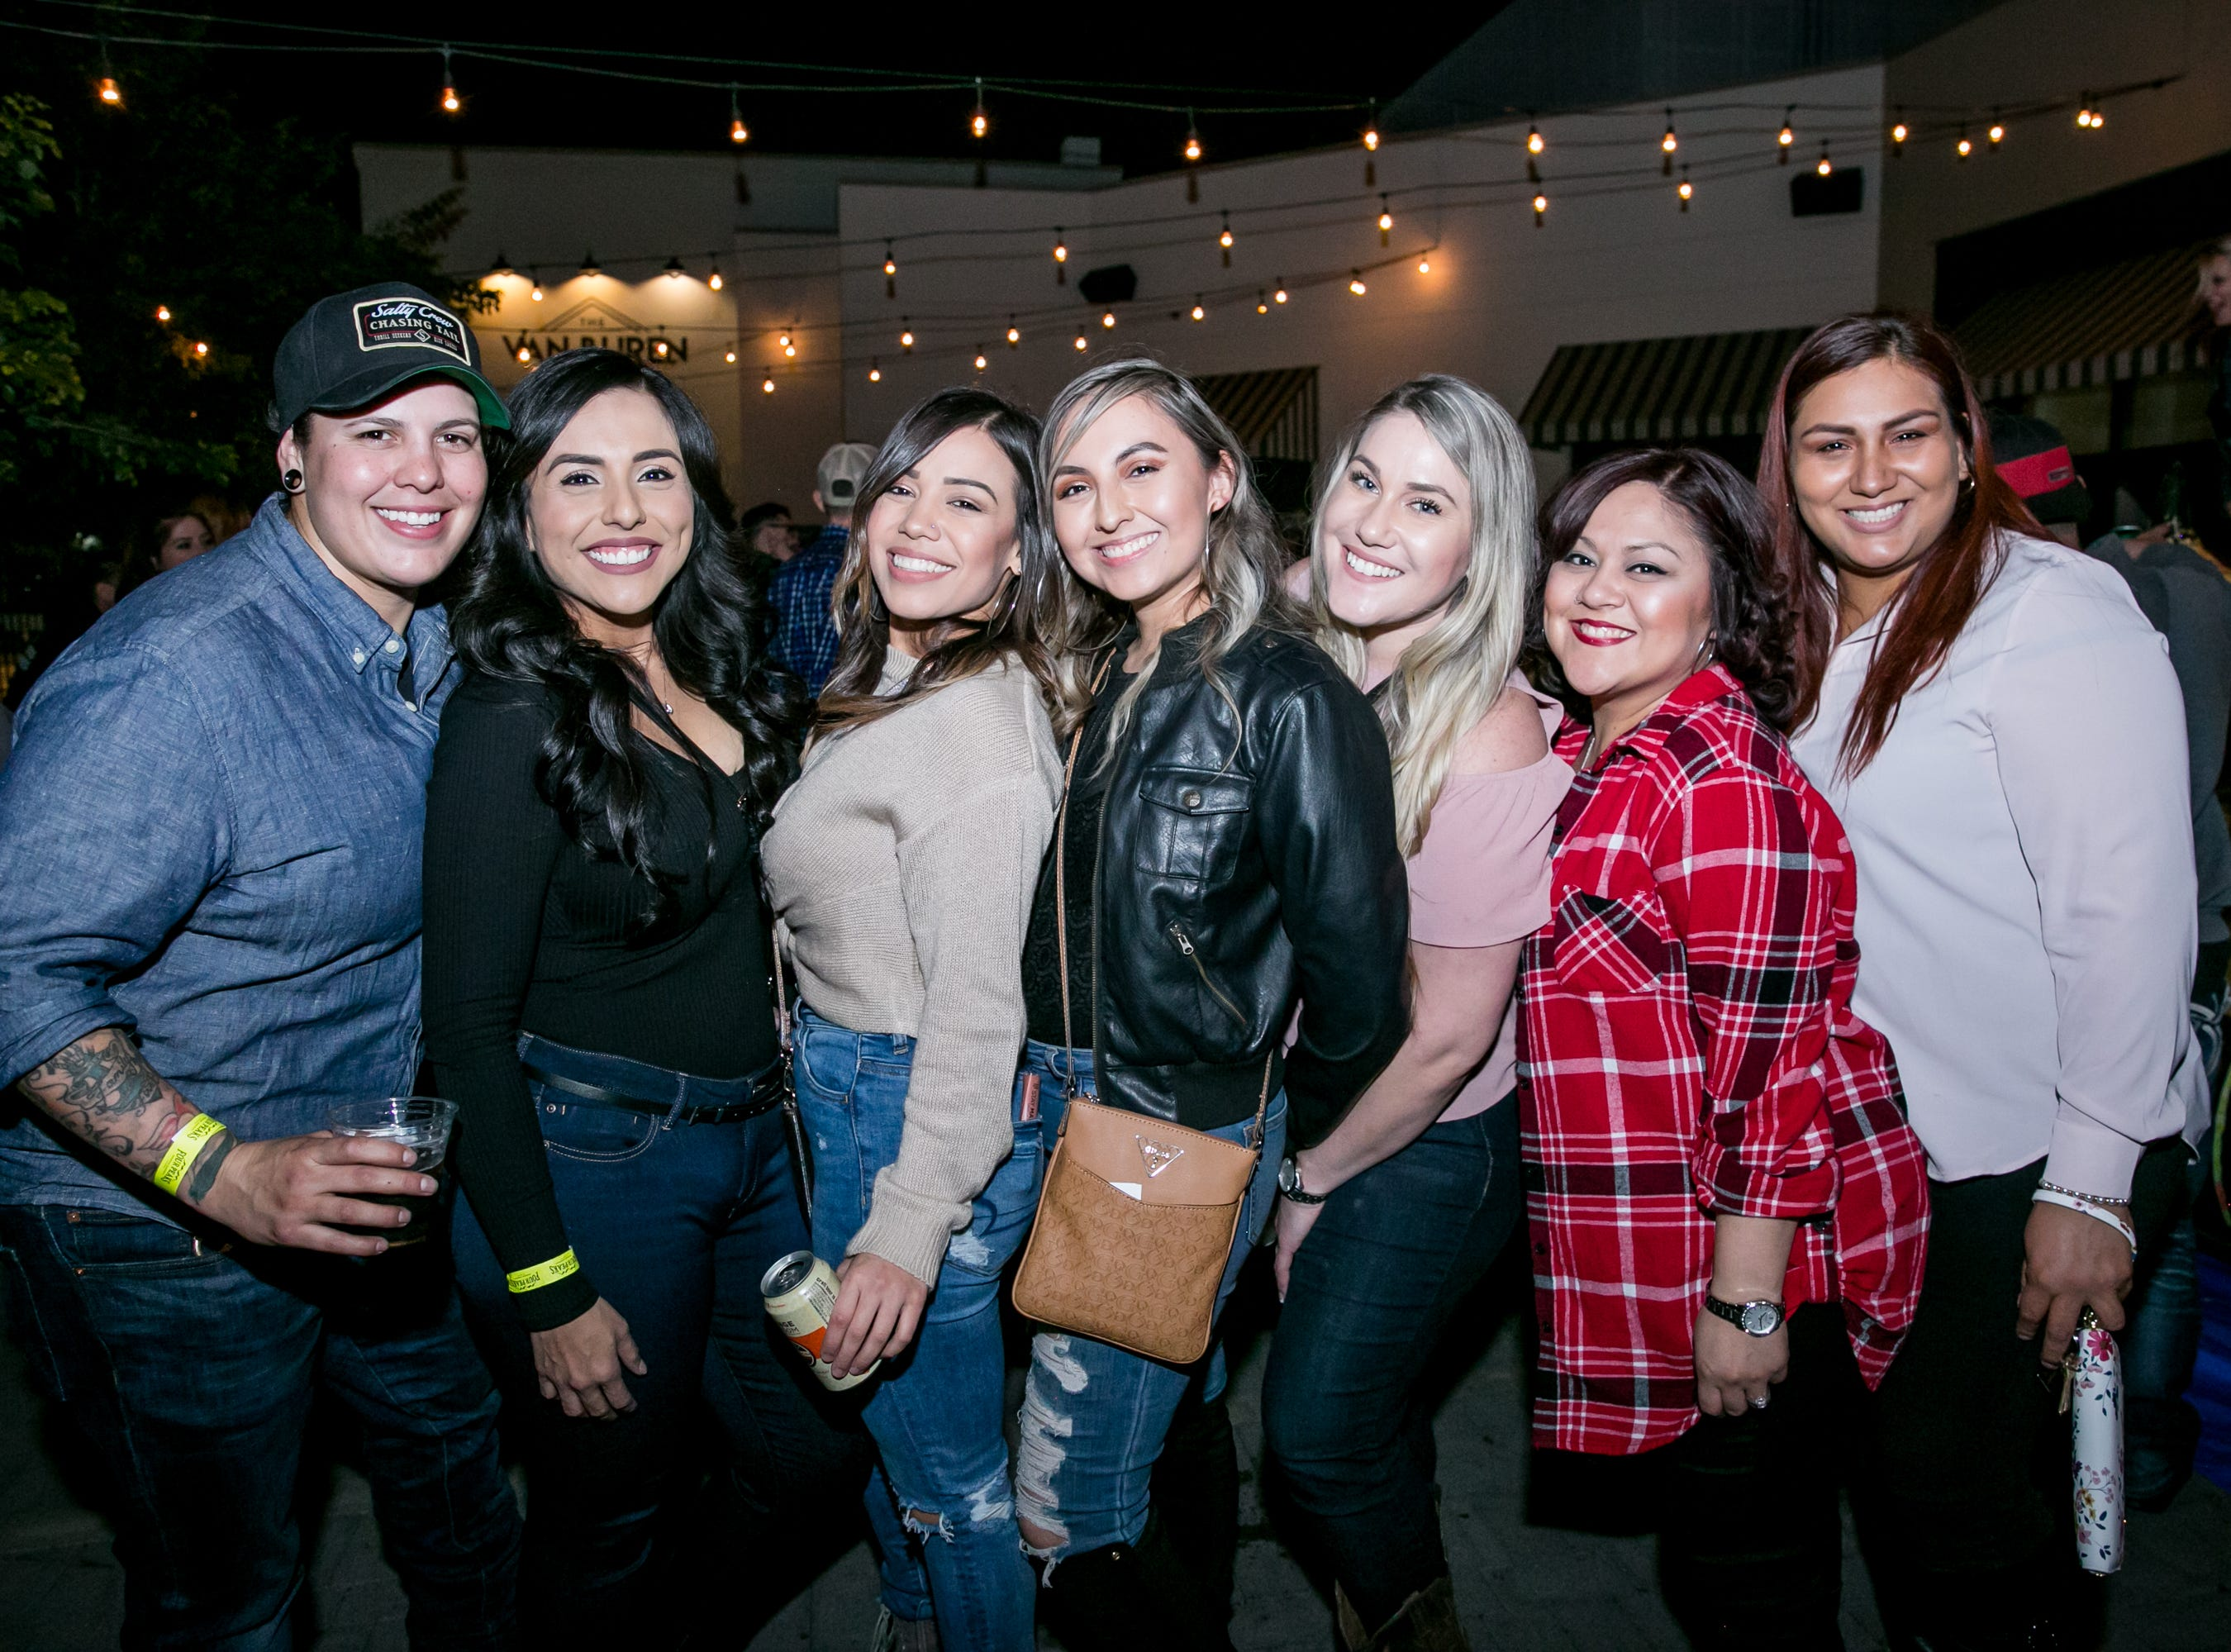 This group liked it, loved it, and wanted some more of it during the KMLE Country 90's Throwback at The Van Buren on Friday, Jan. 11, 2019.